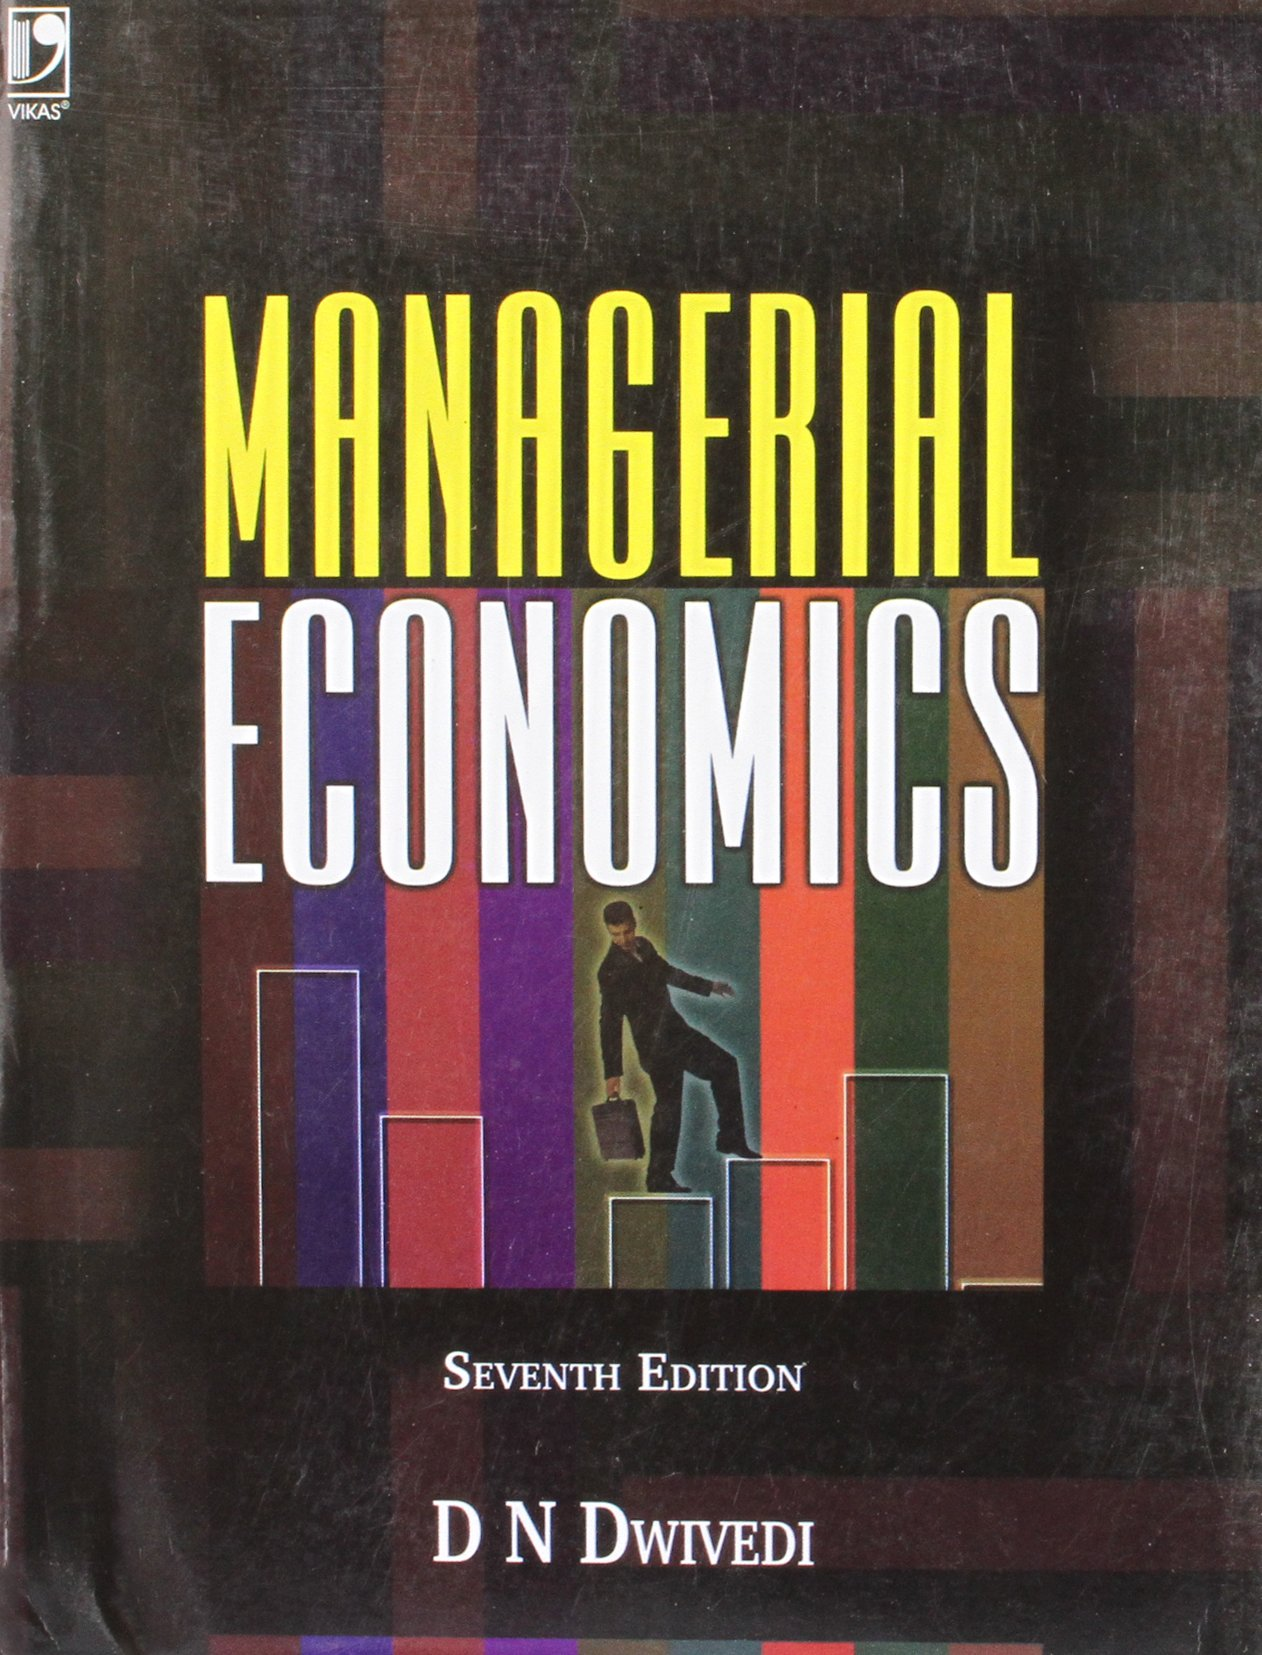 Buy managerial economics old edition book online at low prices in buy managerial economics old edition book online at low prices in india managerial economics old edition reviews ratings amazon fandeluxe Choice Image